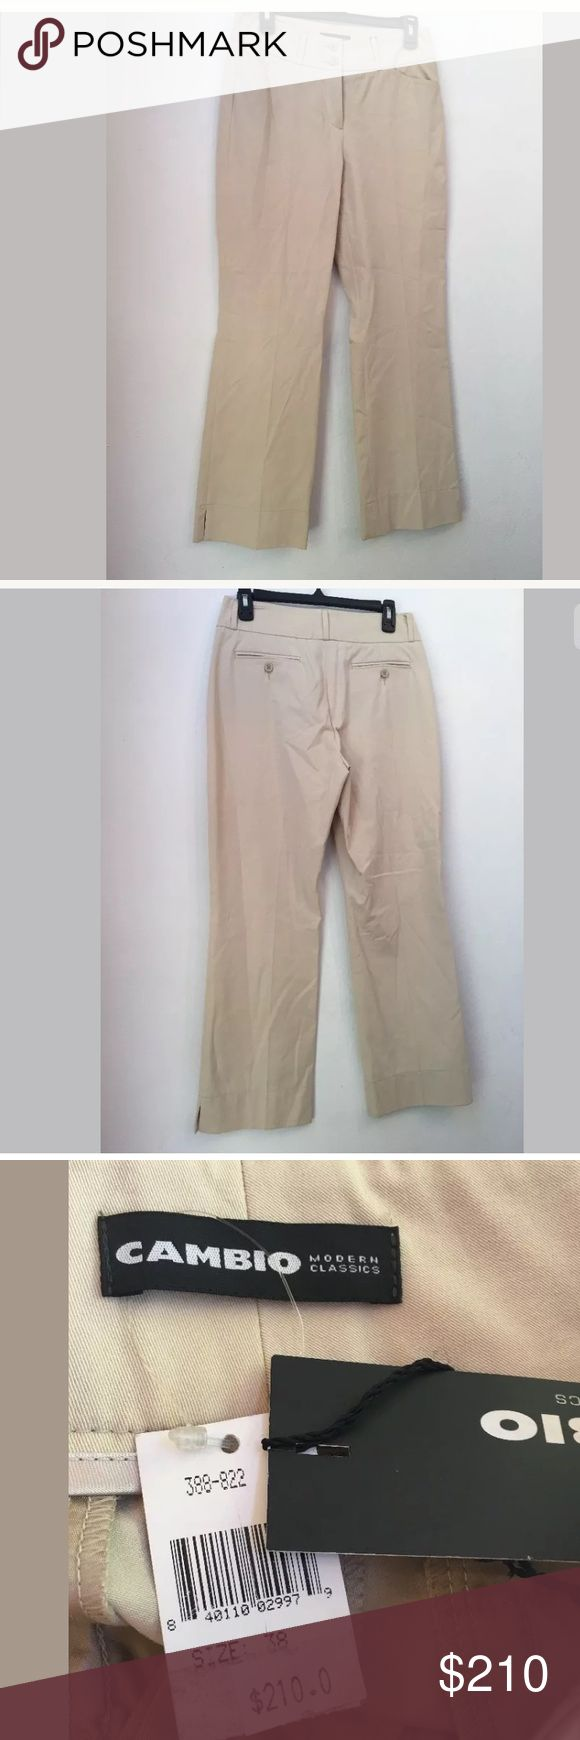 NWT $210 CAMBIO Kristin Cotton Blend Beige Pants 8 NWT $210 CAMBIO C16 Kristin Cotton Blend Beige Pants Size 8  Your satisfaction is our #1 priority.  This is why we ship twice daily Monday thru Saturday to get the item to you as quickly as possible!! :).  If for any reason you are not 100% satisfied please message us and we will work with you to make it right!!      Measurements: Waist: approx. 29 inches Inseam: approx. 27 inches  -Retails Price: $210 + TAX -Material: 92% Cotton, 8%…